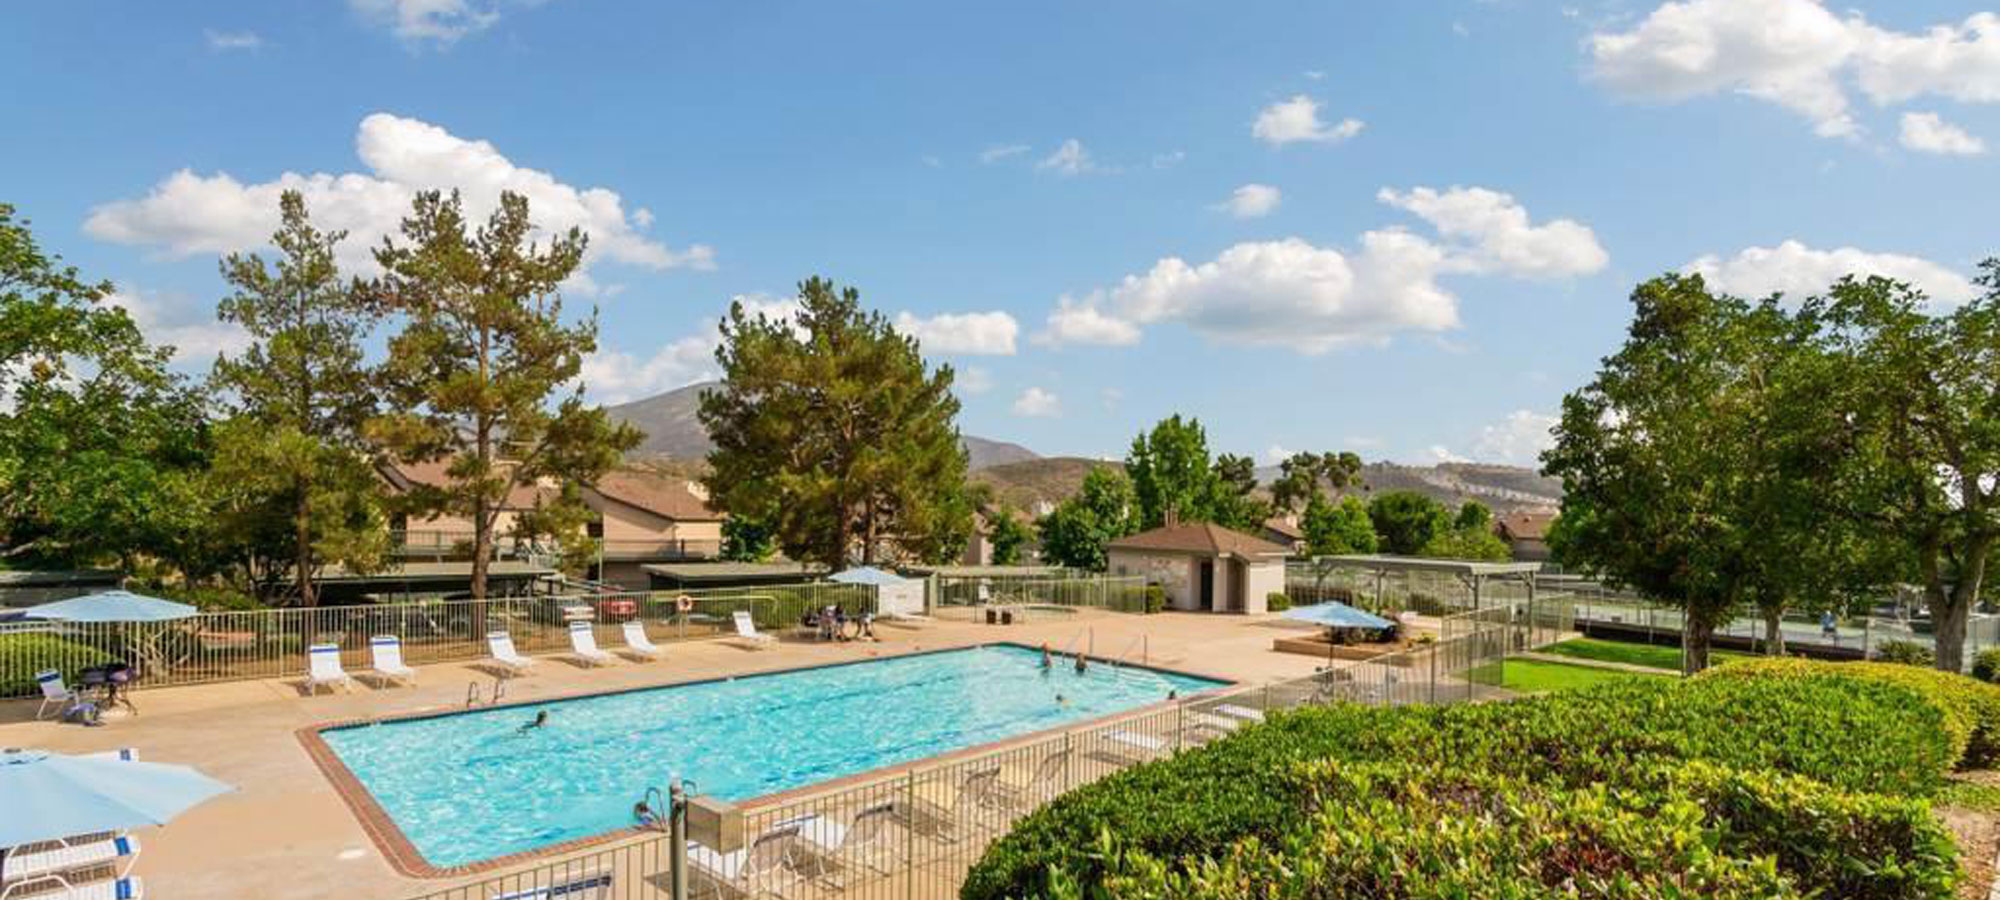 3043 Chipwood Ct, Spring Valley, CA 91978